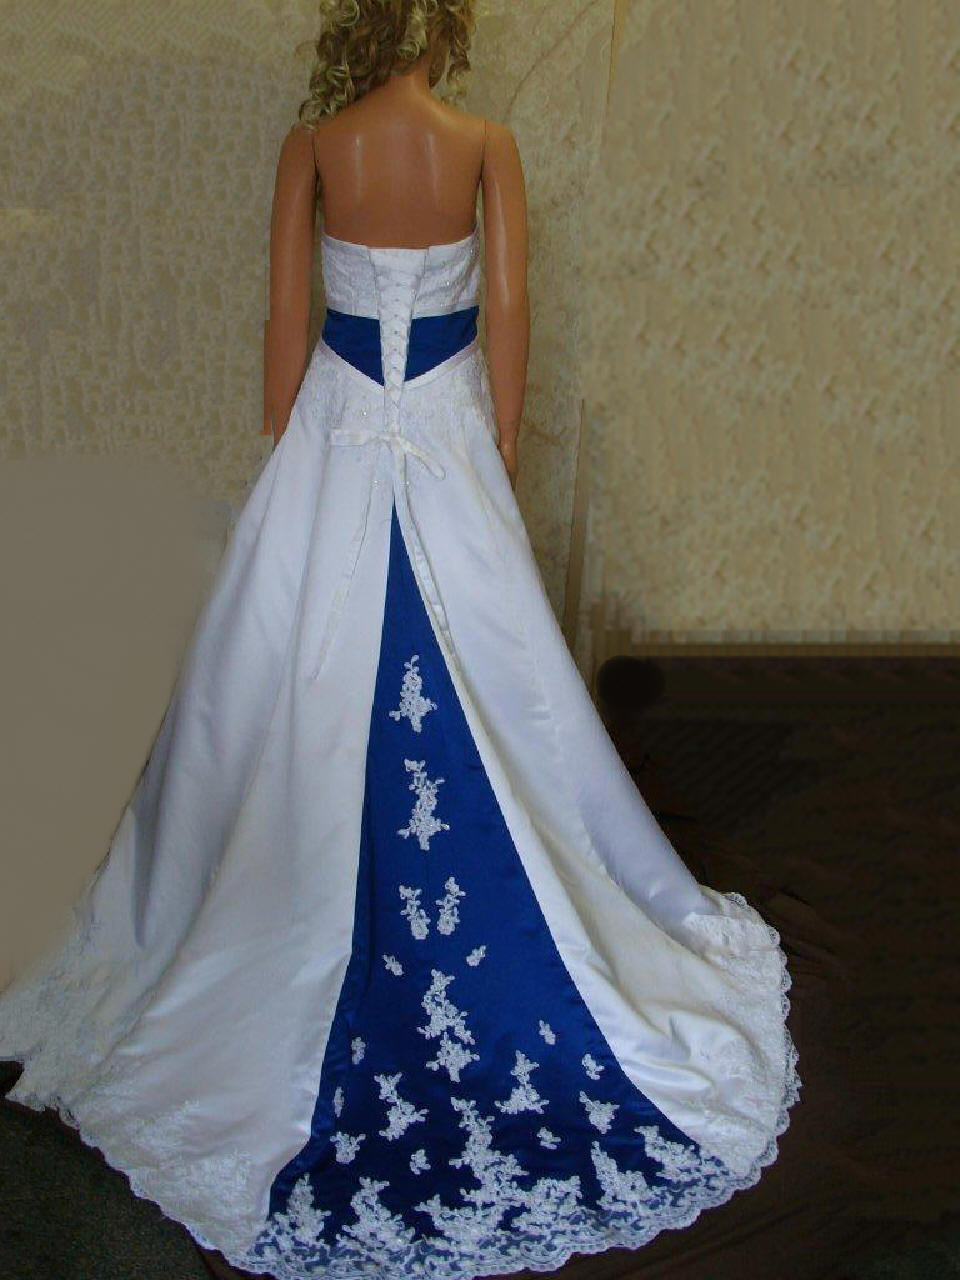 Bridal gowns with color royal blue wedding dresses blue and white strapless wedding gown